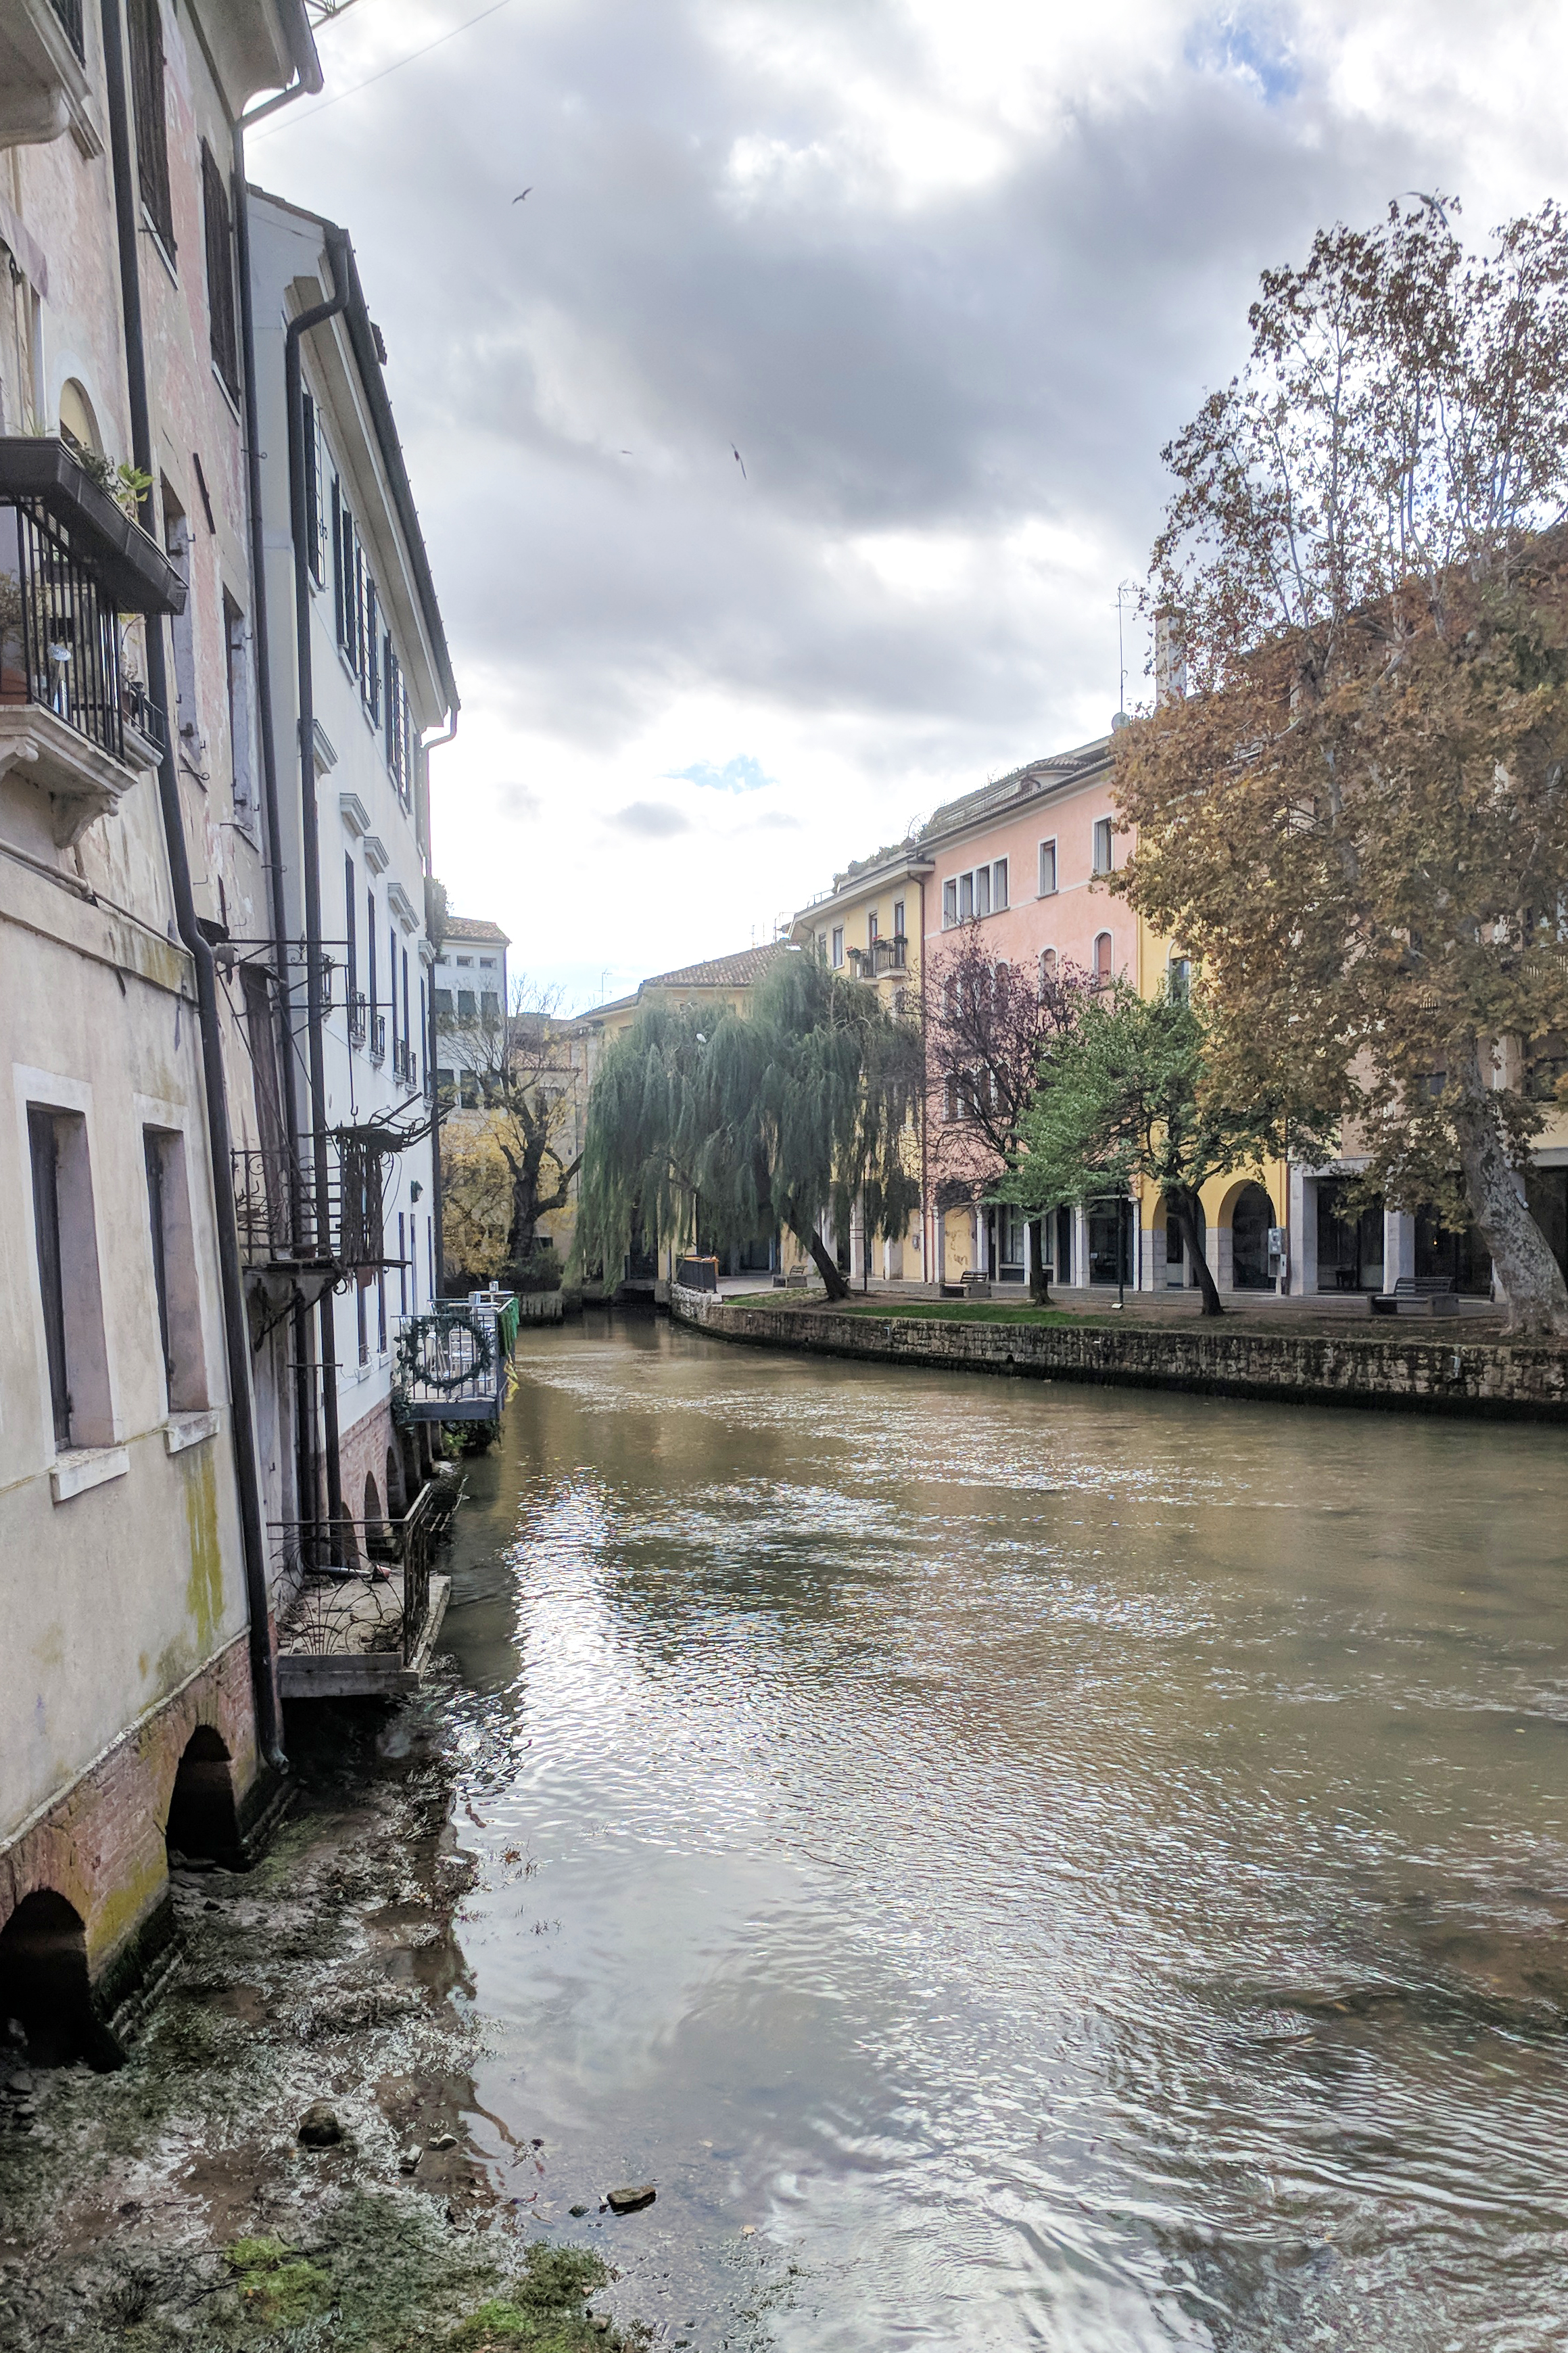 Treviso Italy is built around canals like Venice but is completely different from Venice. Jamie House Design